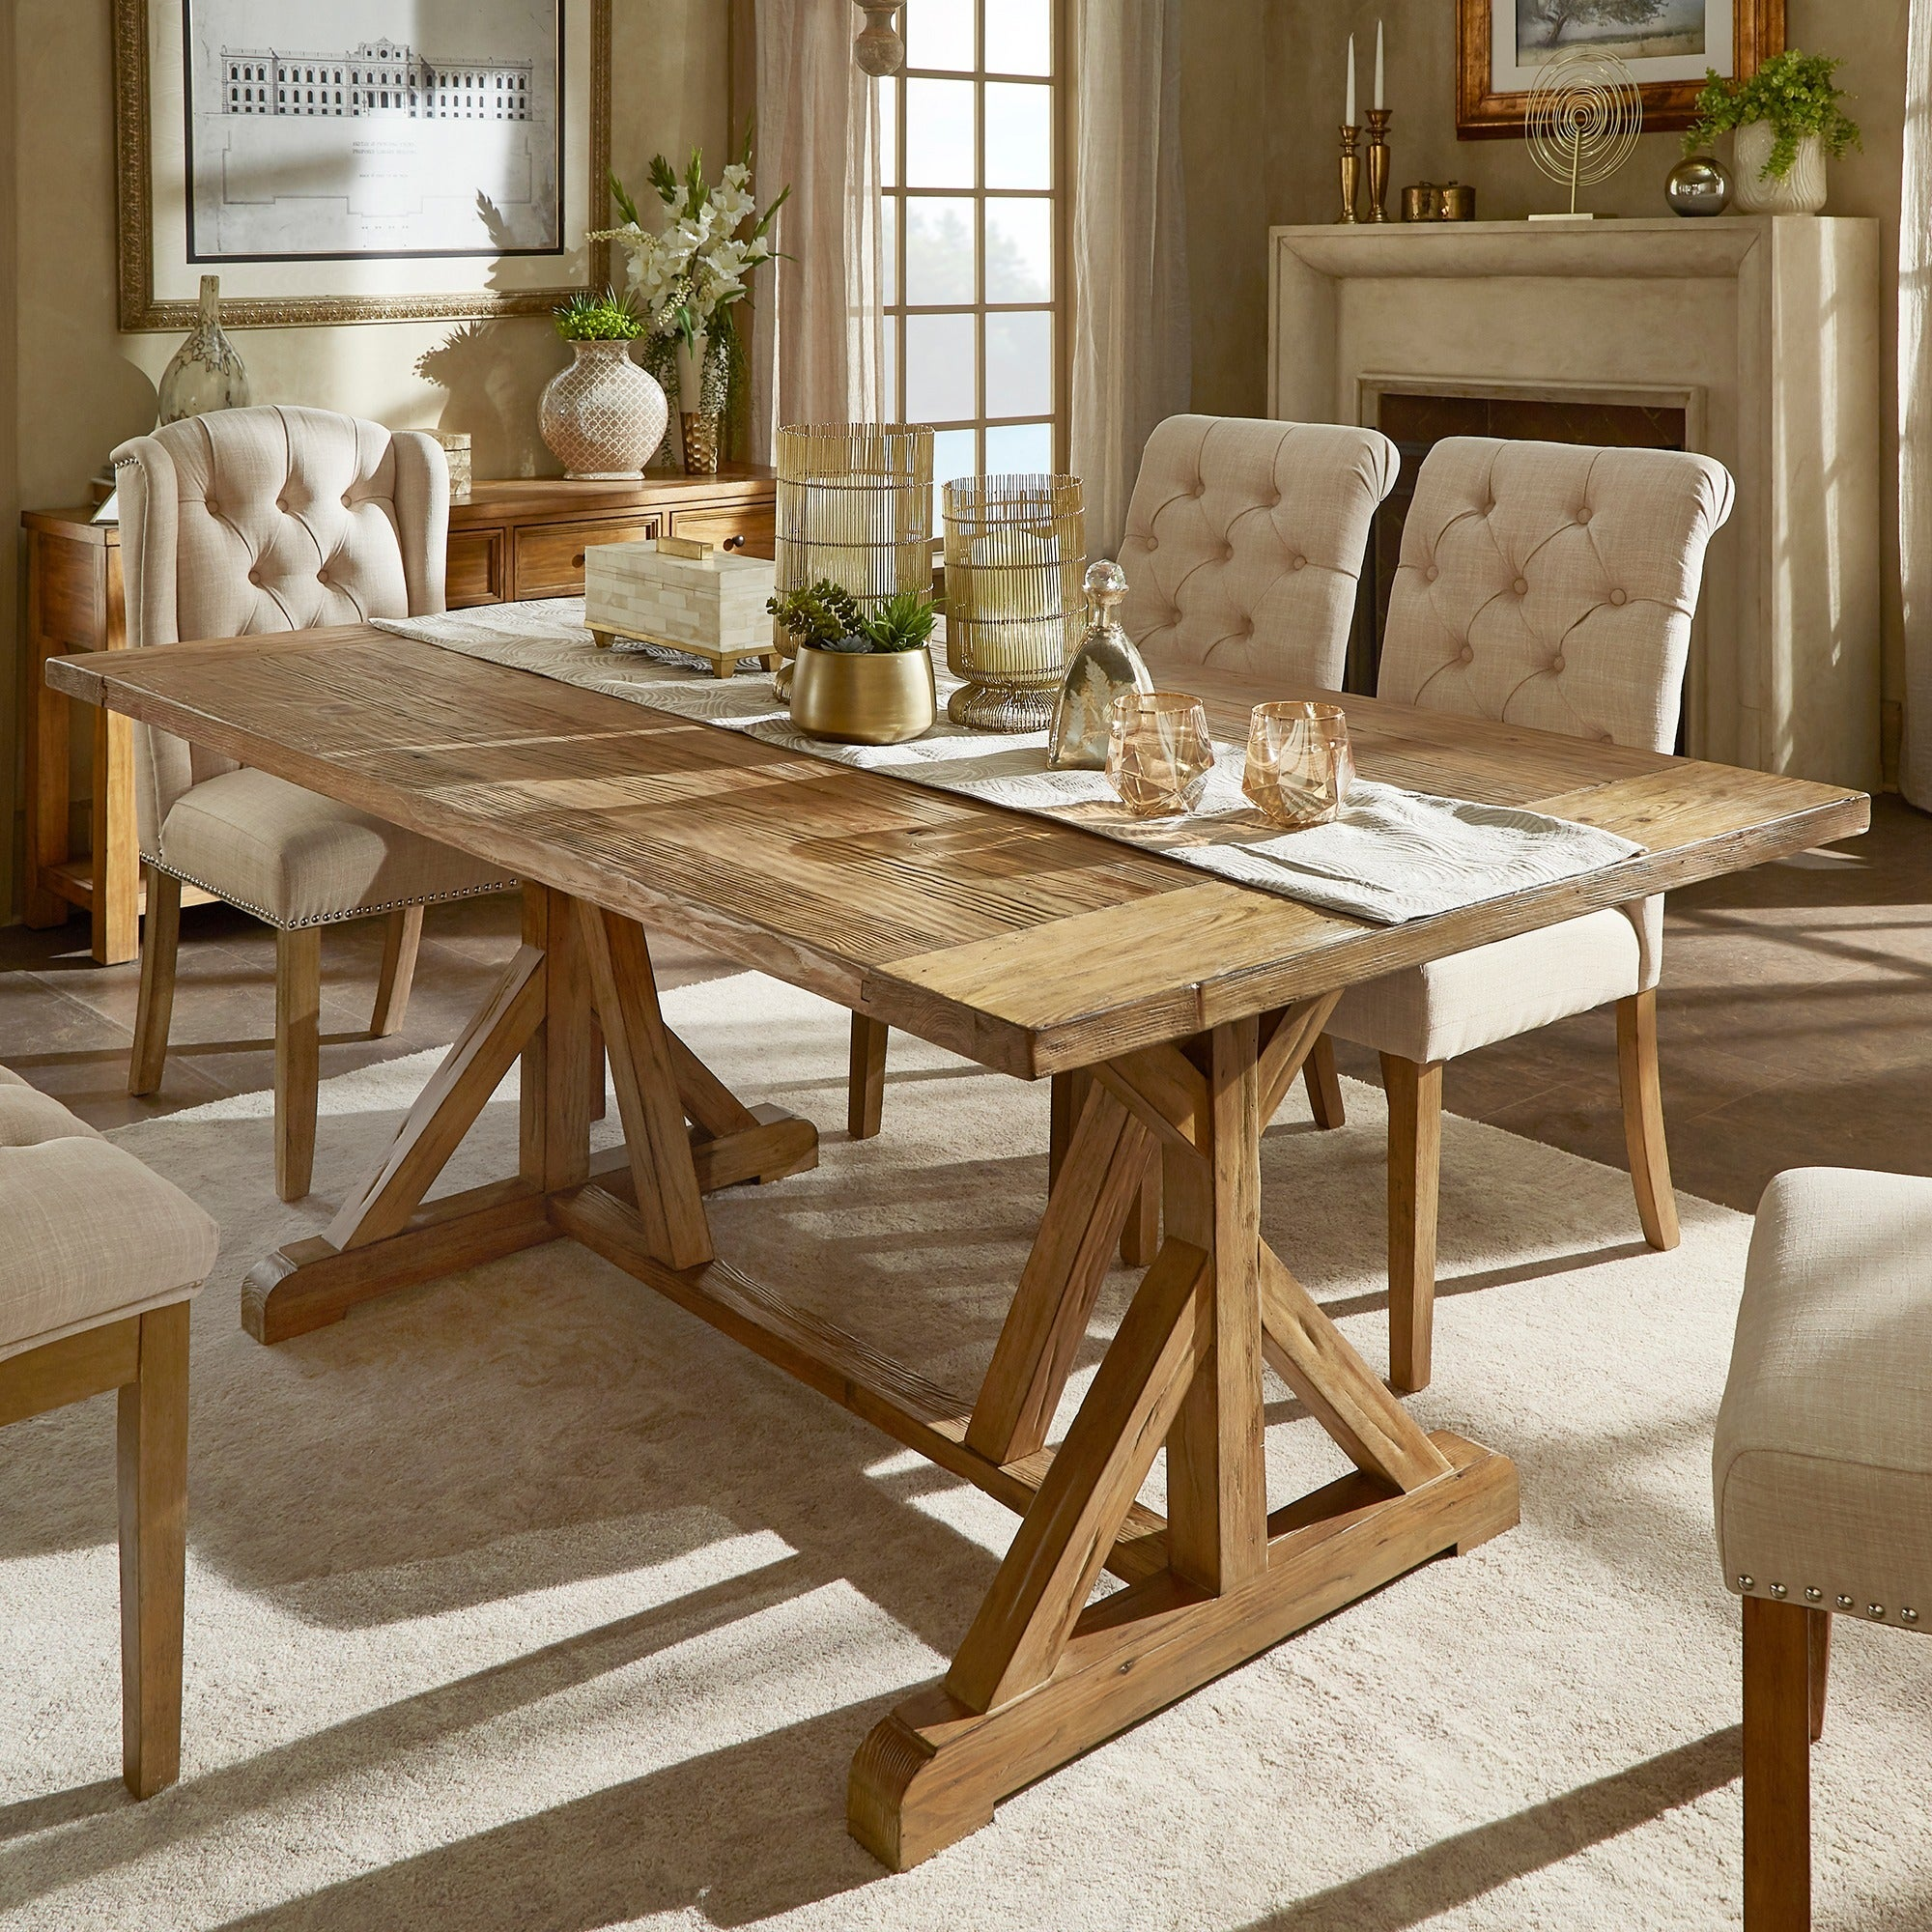 f370d5ce3ea4a Benchwright Rustic Pine Accent Trestle Reinforced Dining Table by iNSPIRE Q  Artisan